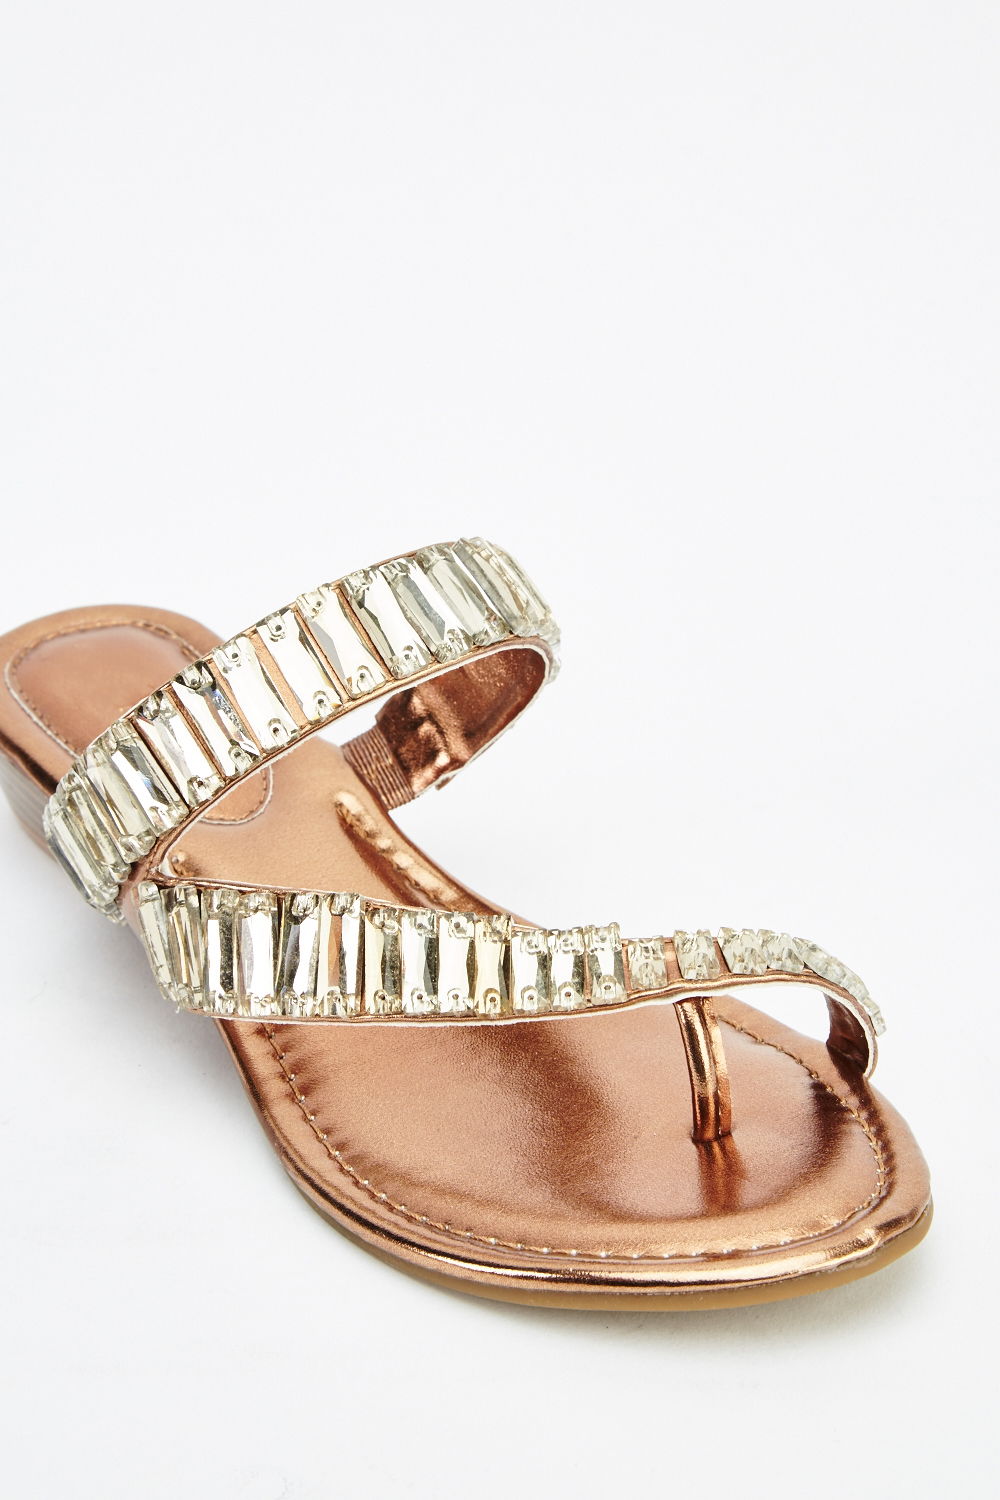 8442876d1 Embellished Strap Flip Flop Sandals - Just £5